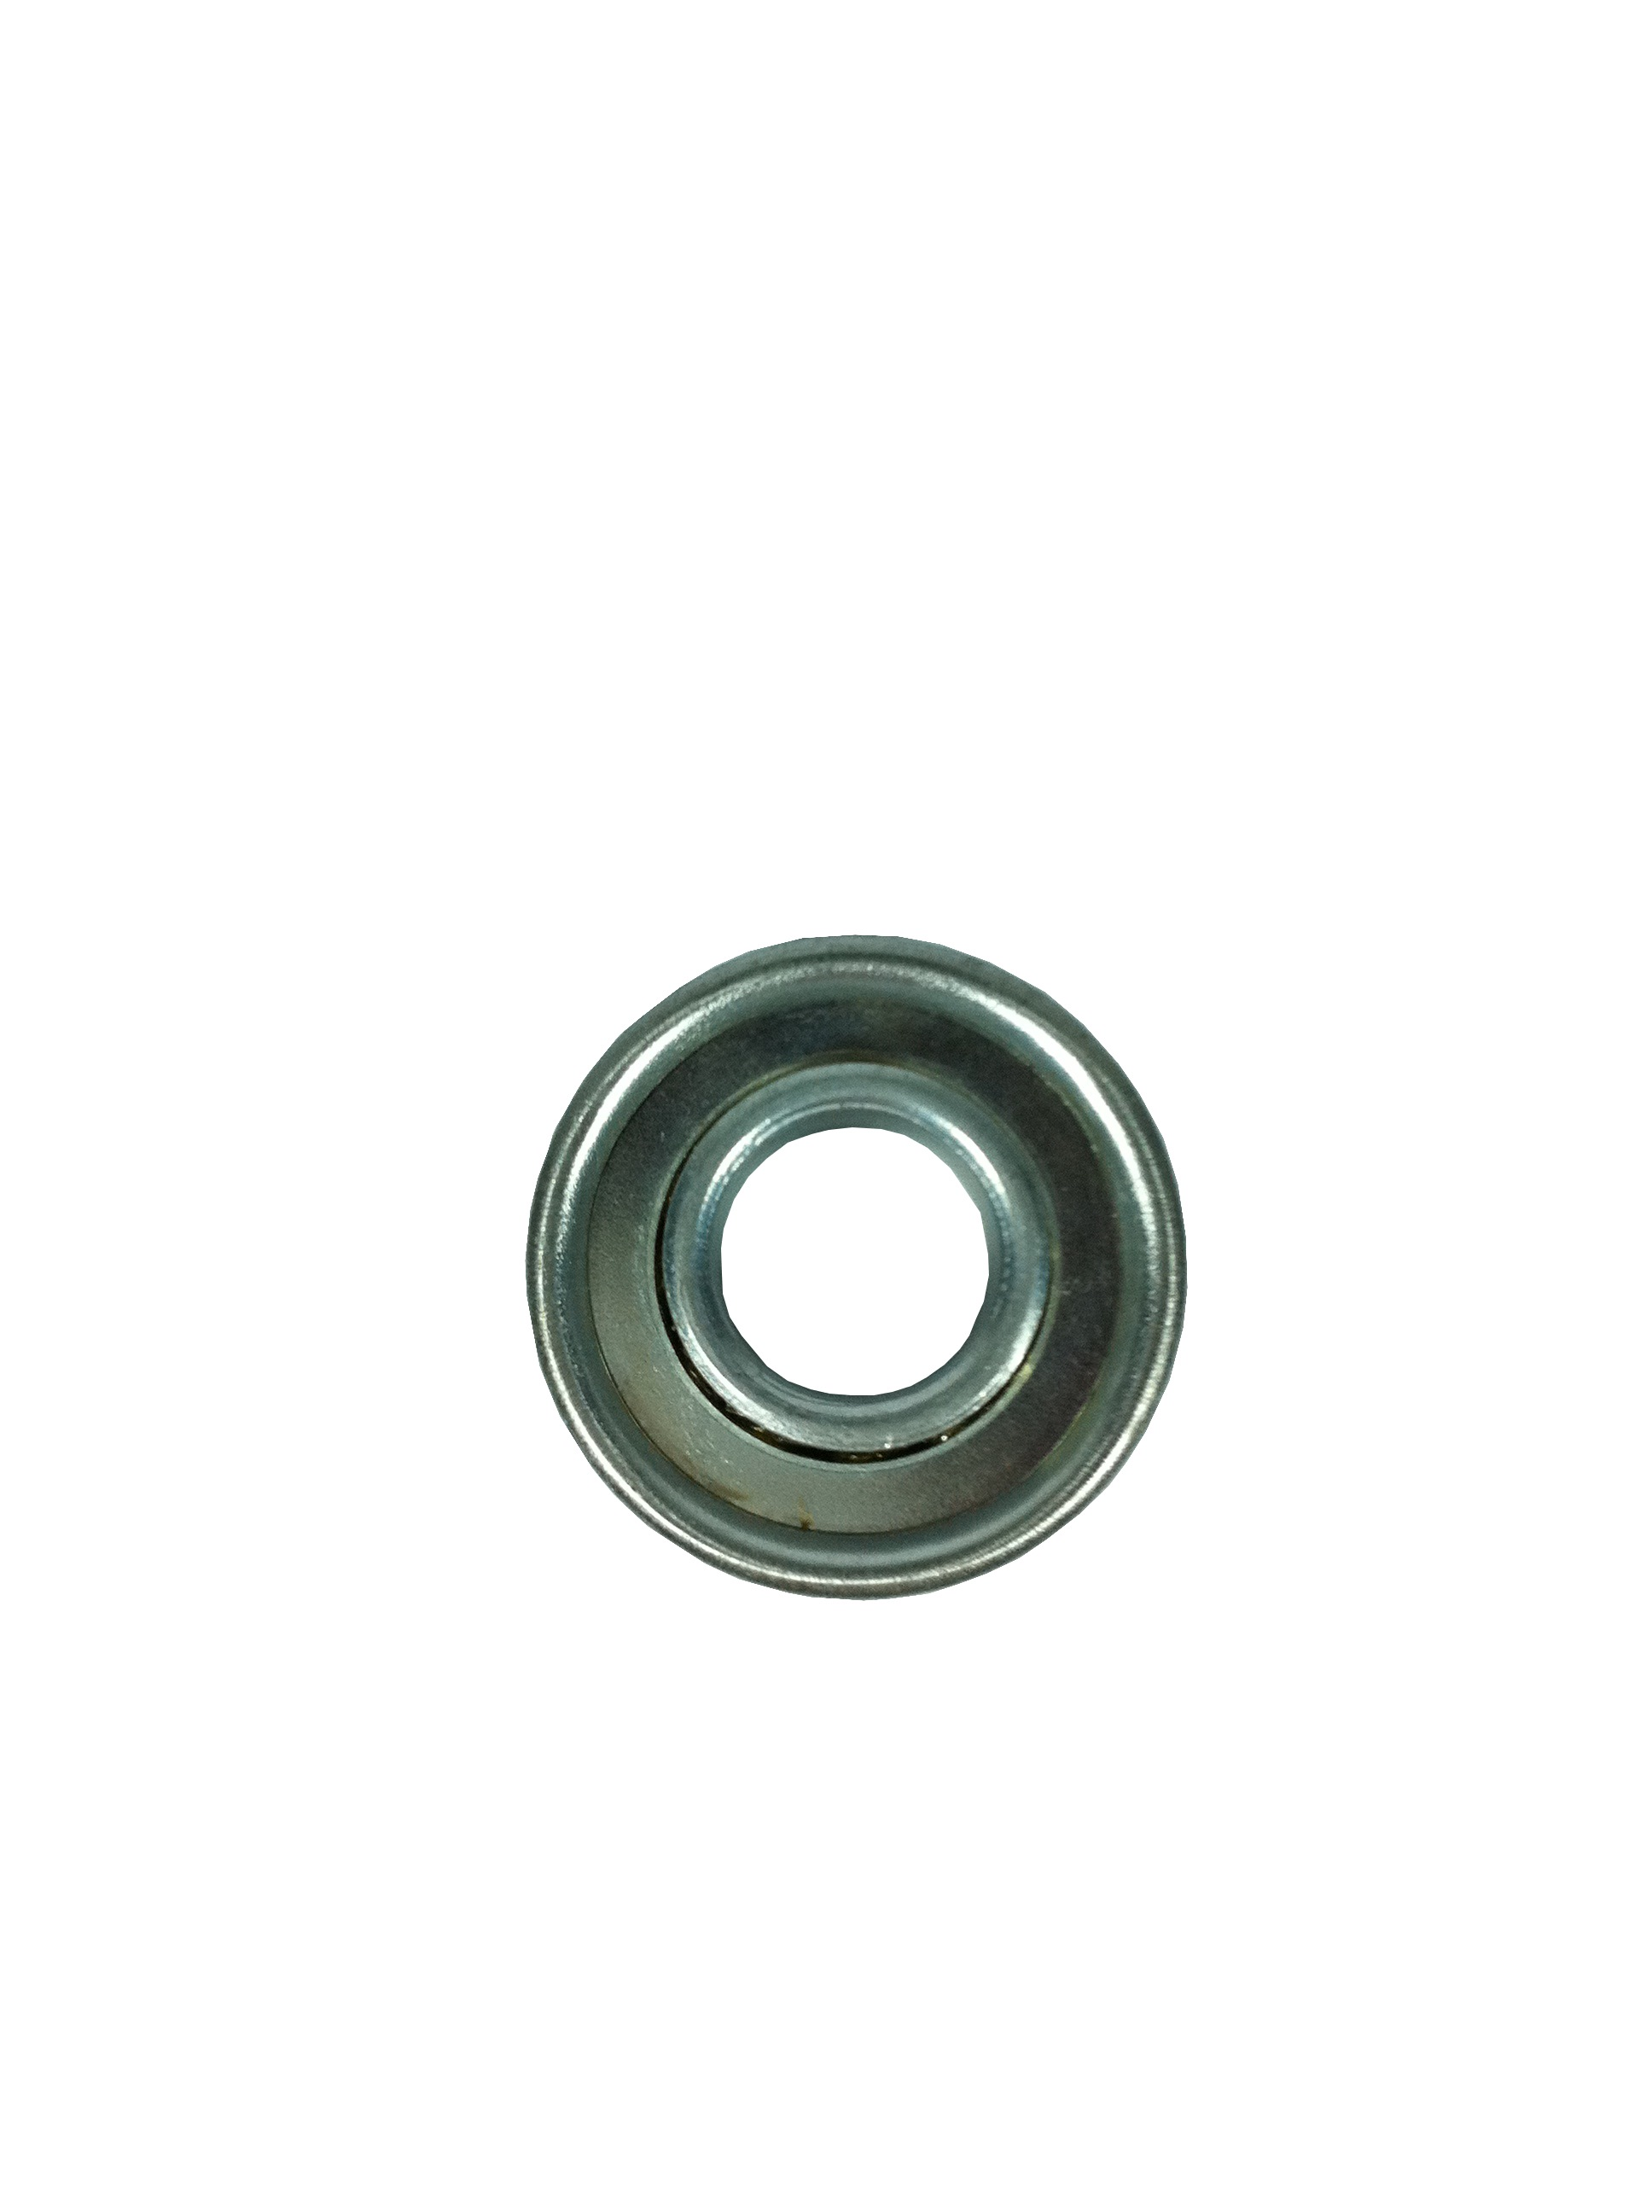 Bearing for Pneumatic Wheel (w/barrow)